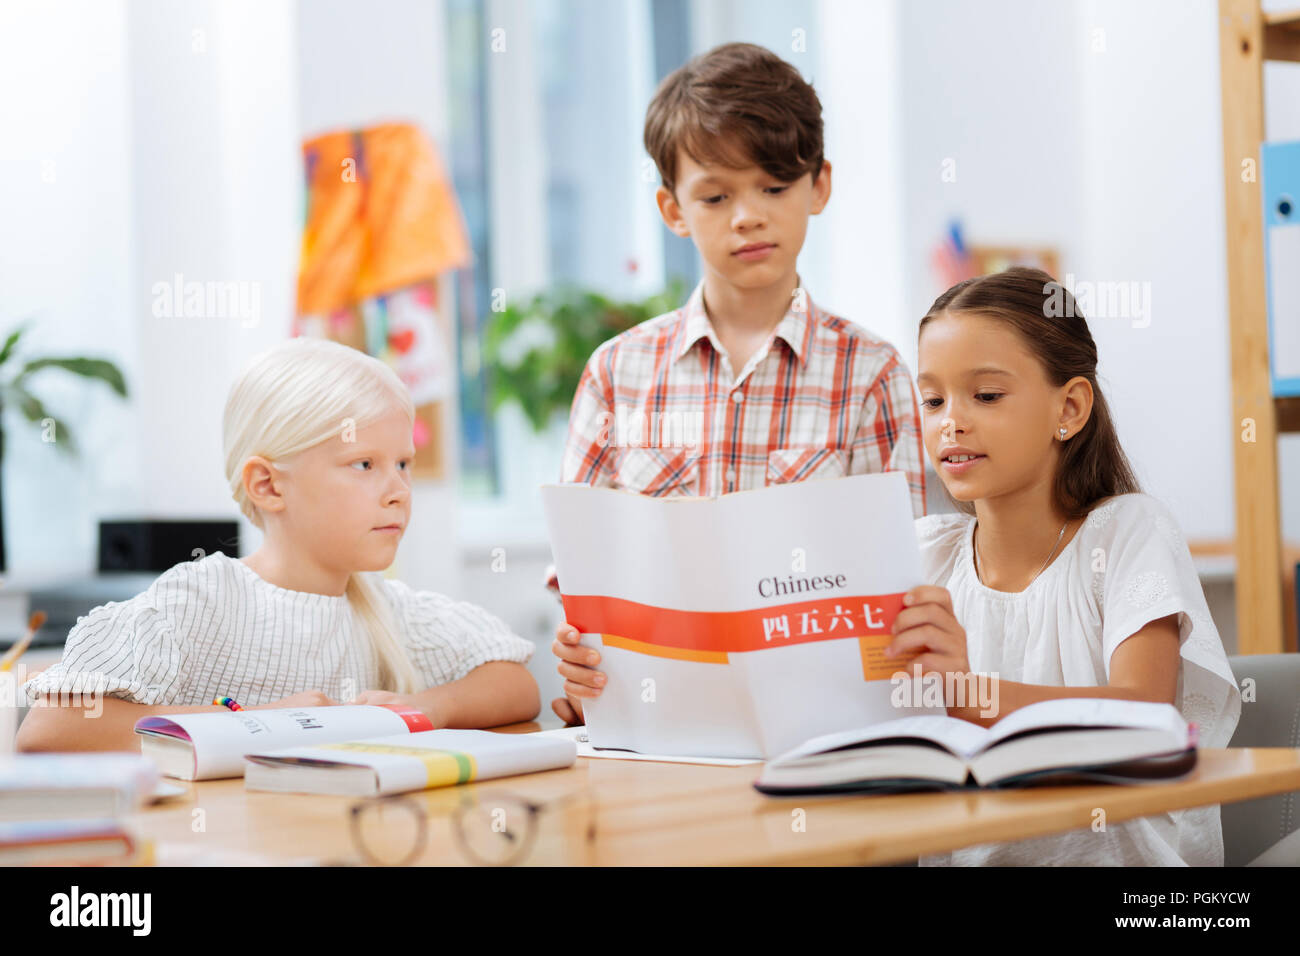 Concentrated children paying attention on details in an exercise - Stock Image